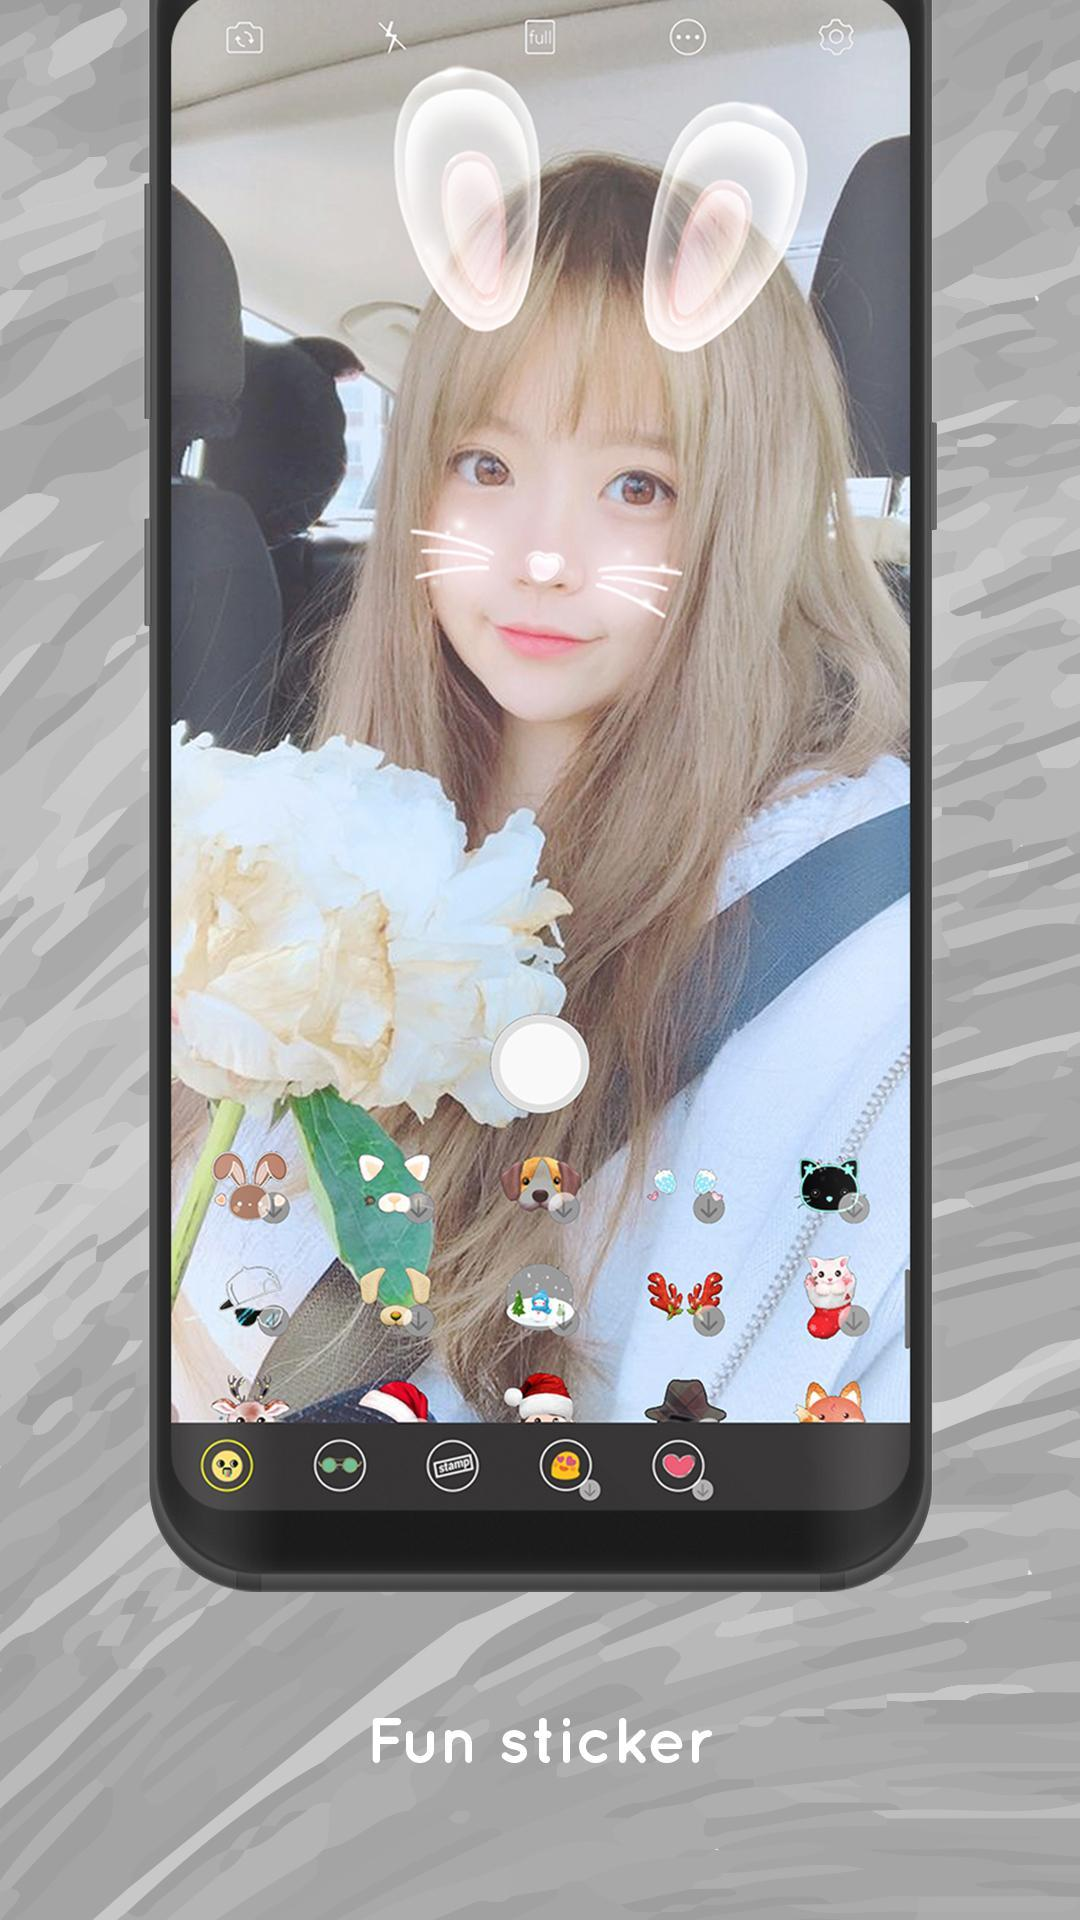 S9 Camera Pro for Android - APK Download